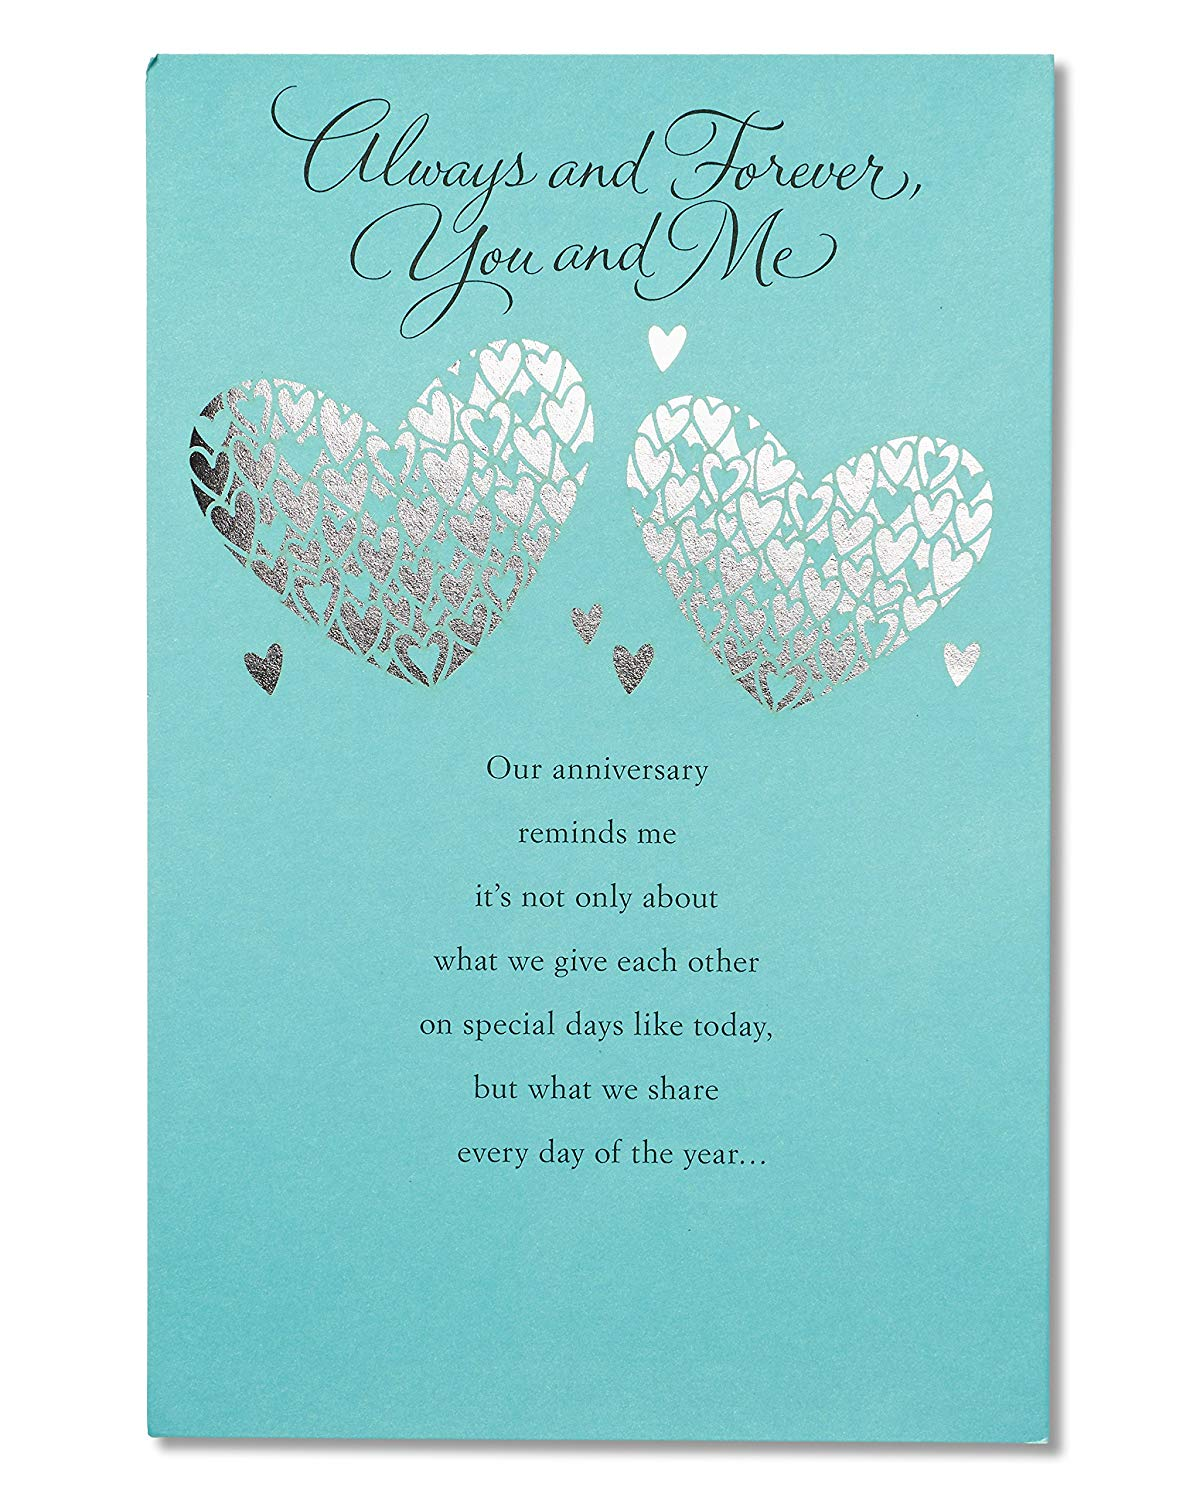 American Greetings Wedding Anniversary Card Romantic (Greatest Gift)